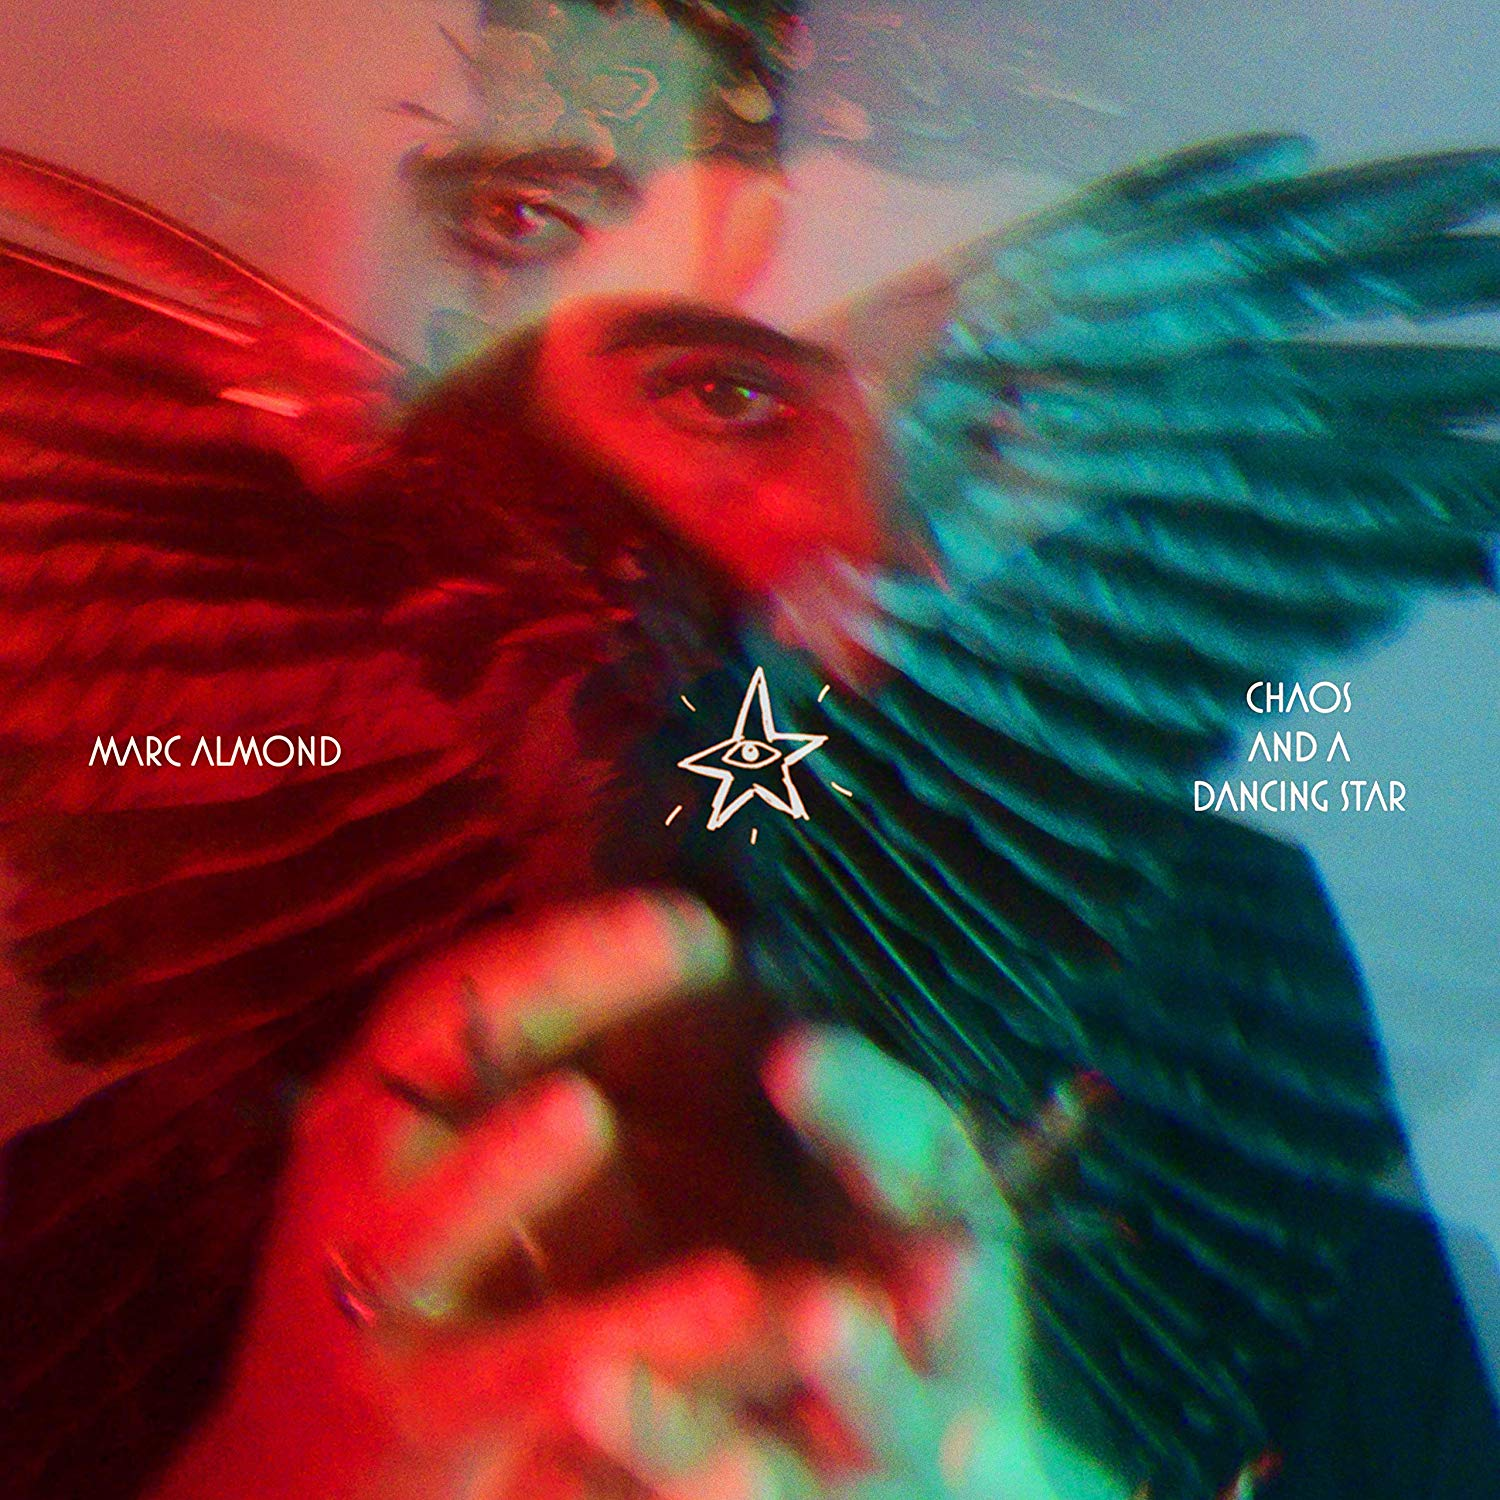 marc almond chaos and a dancing star